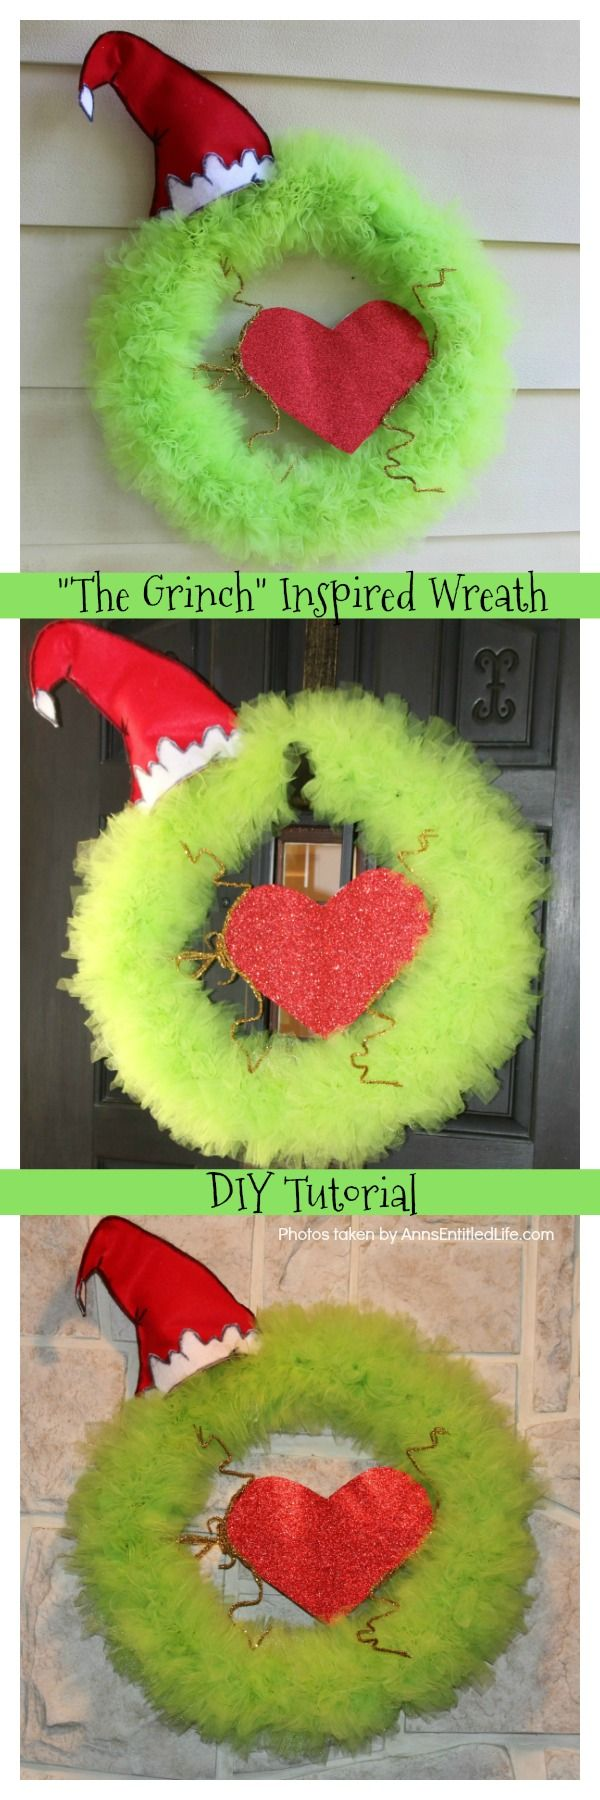 The Grinch Inspired Wreath DIY Tutorial  A beautiful How the Grinch Stole Christmas inspired wreath sure to make even the coldest heart burst! This step by step tutorial is complete with (free) pdfs for the hat and heart for you to print and make exact. This wreath will look great on your front door, over your mantel, or on a wall. Truly unique holiday decor!